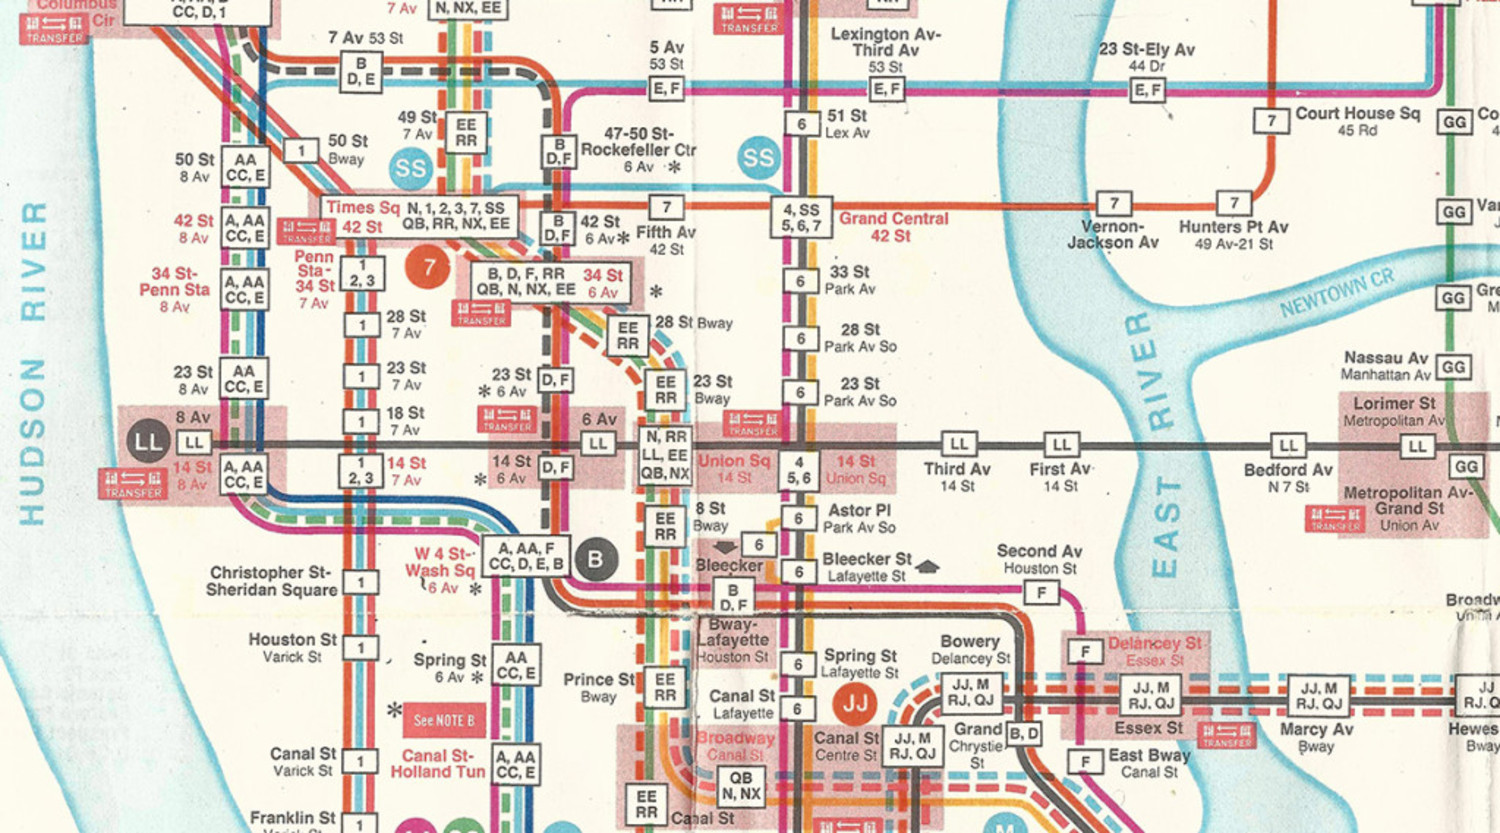 New York City Subway Map Design.Recently Restored New York City Subway Map May Vastly Improve Modern